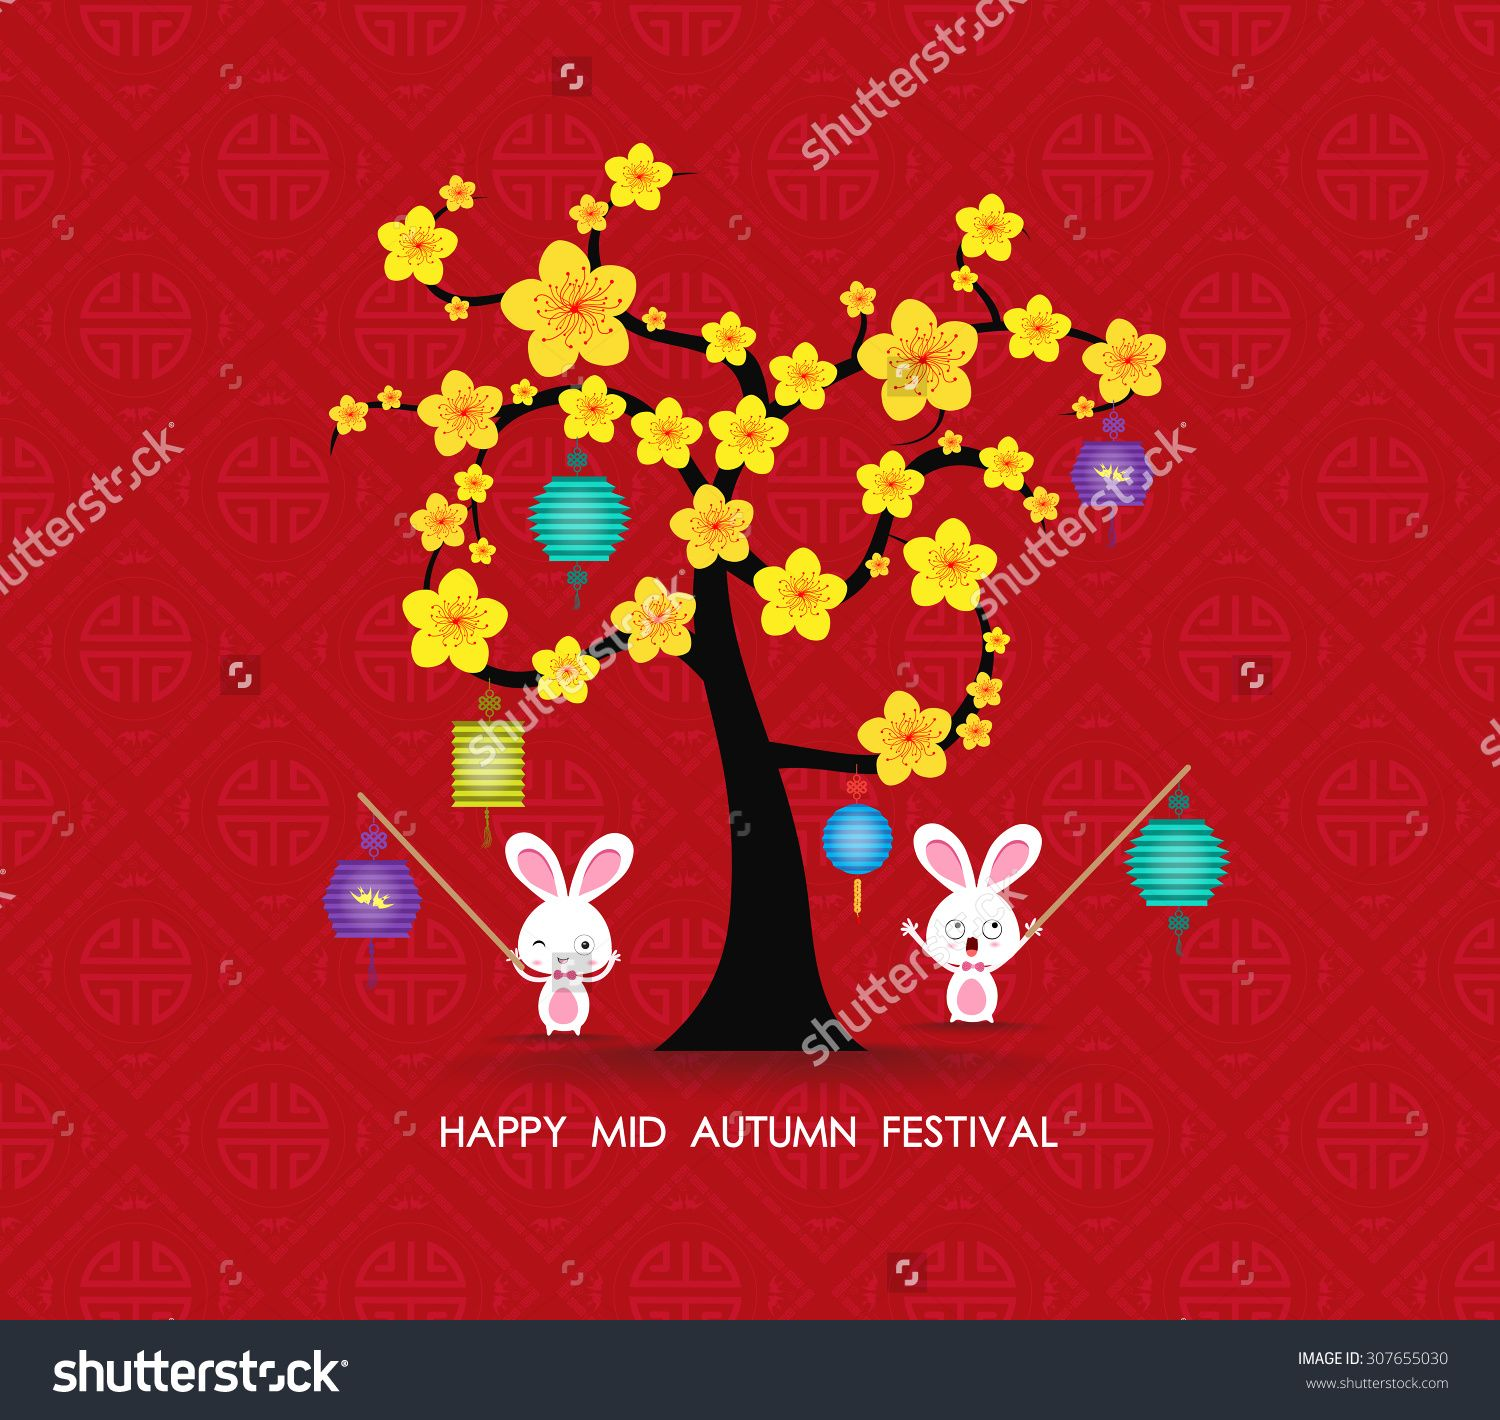 Mid autumn festival rabbit playing with lanterns happy greeting mid autumn festival rabbit playing with lanterns happy greeting card kristyandbryce Choice Image